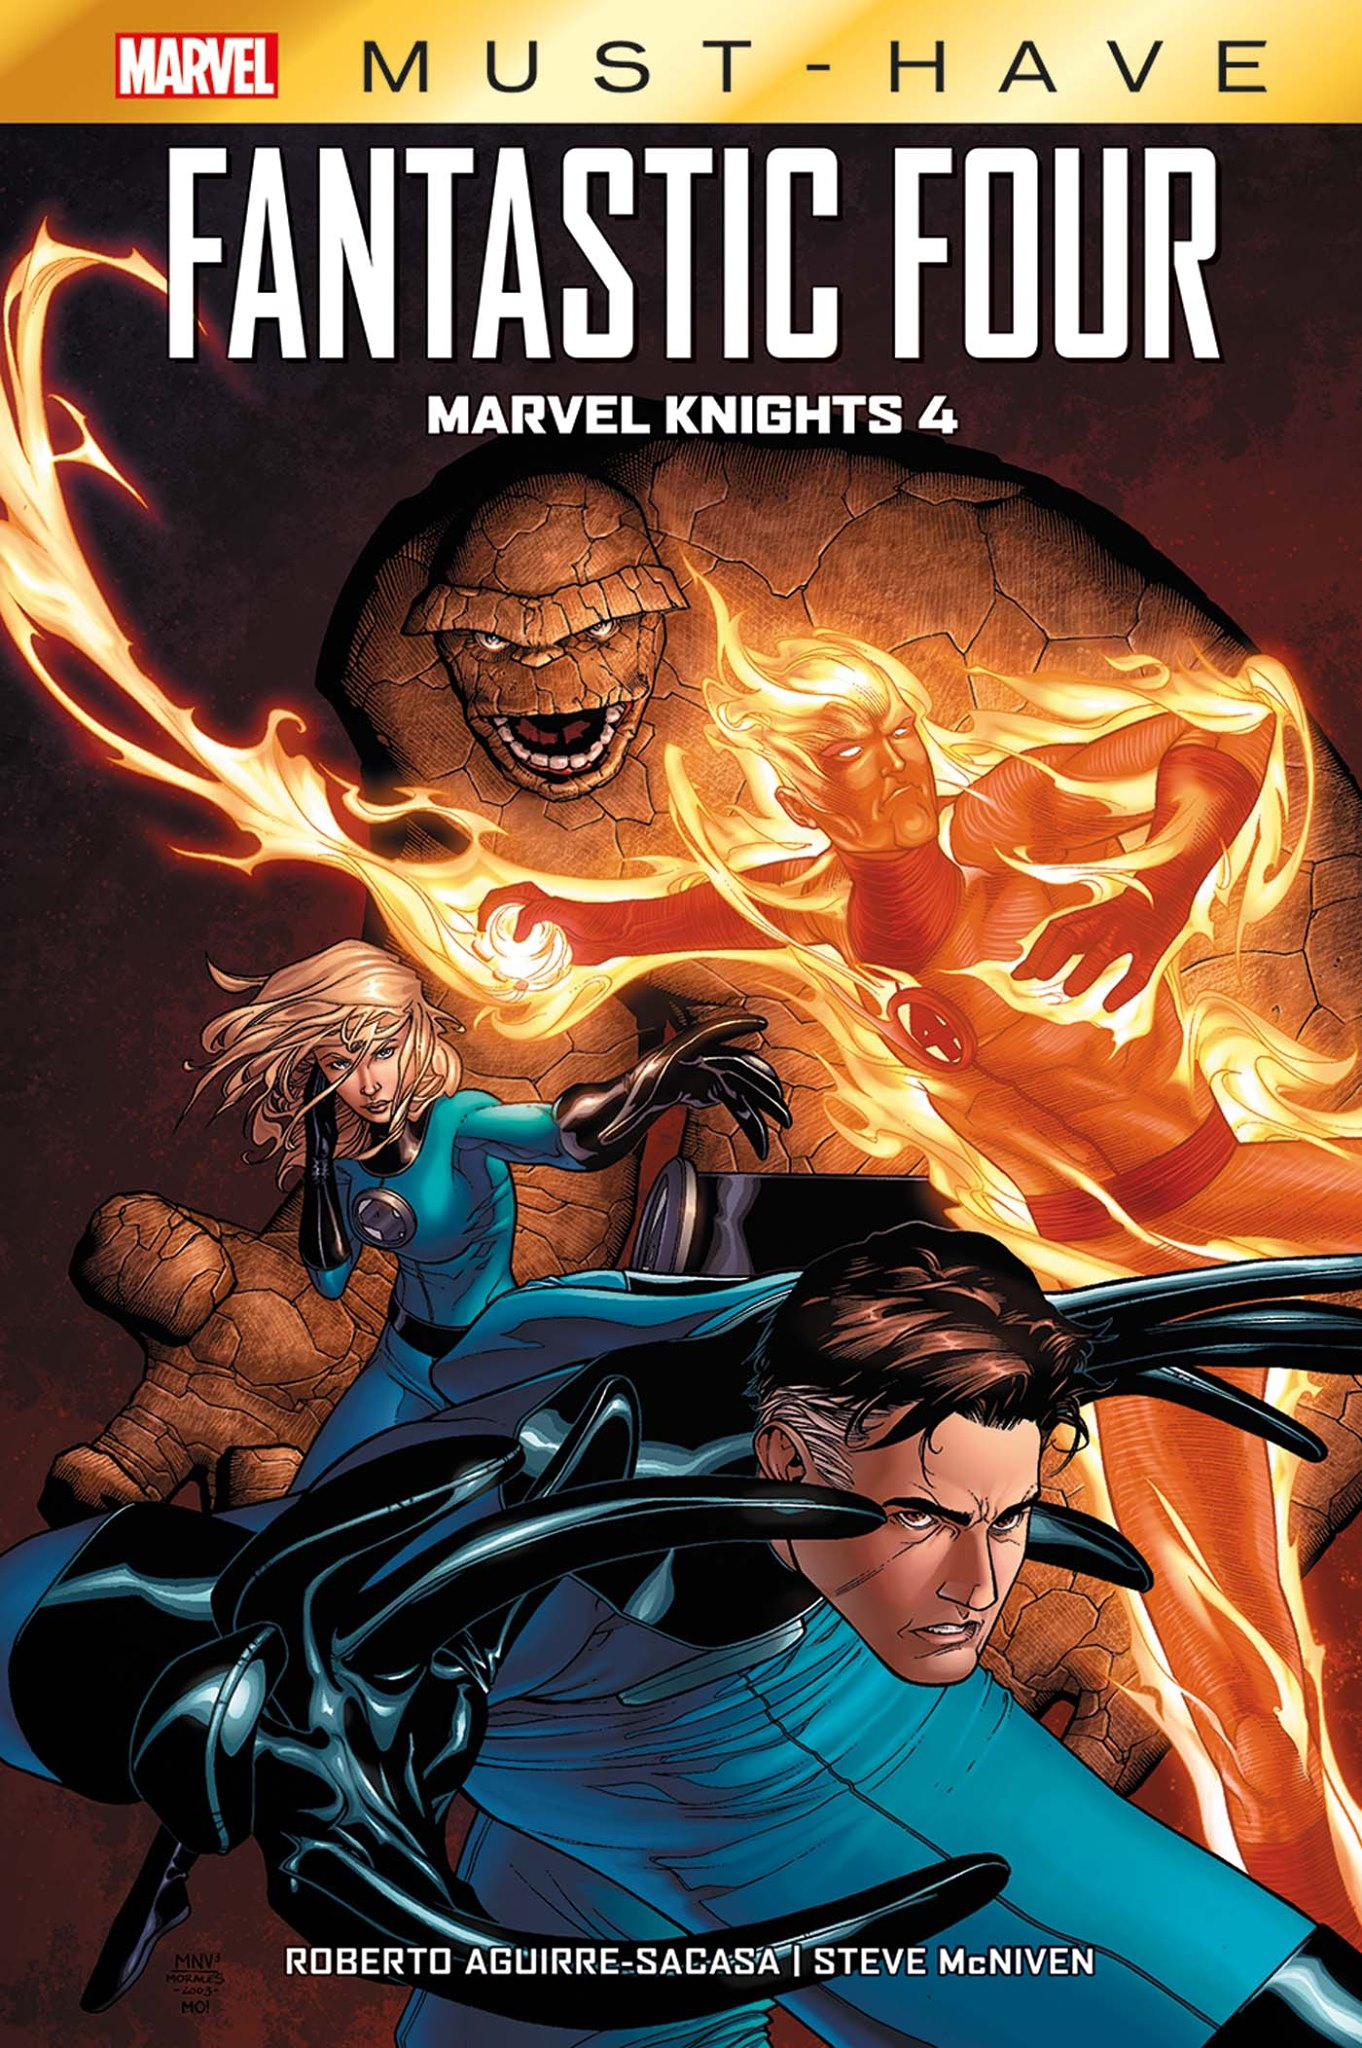 FANTASTIC FOUR : MARVEL KNIGHTS 4 (MUST-HAVE)